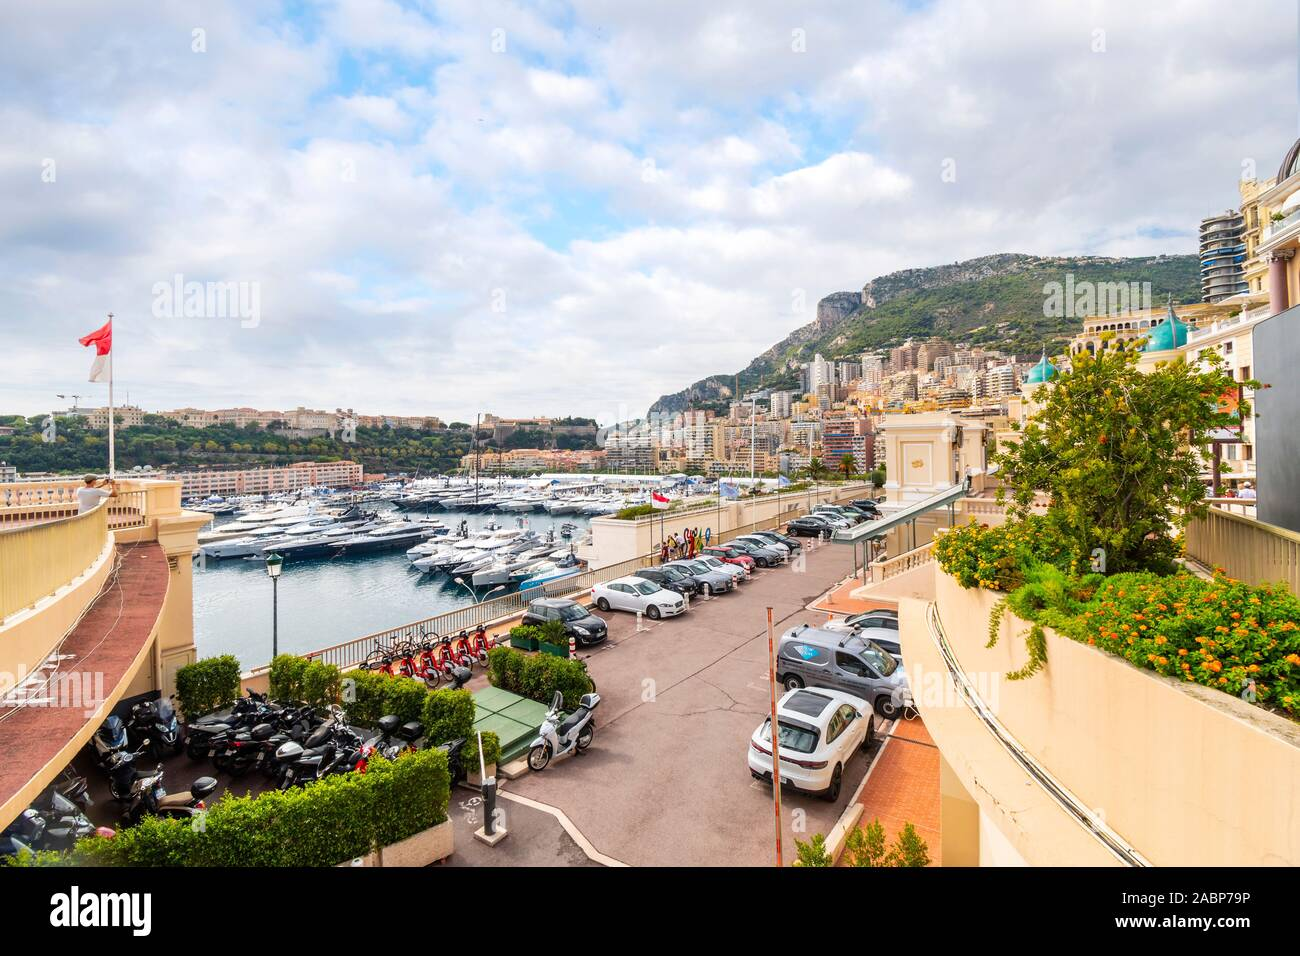 Yachts are moored in one of the smaller marinas in the Fontvieille area of Monte Carlo, Monaco. Stock Photo